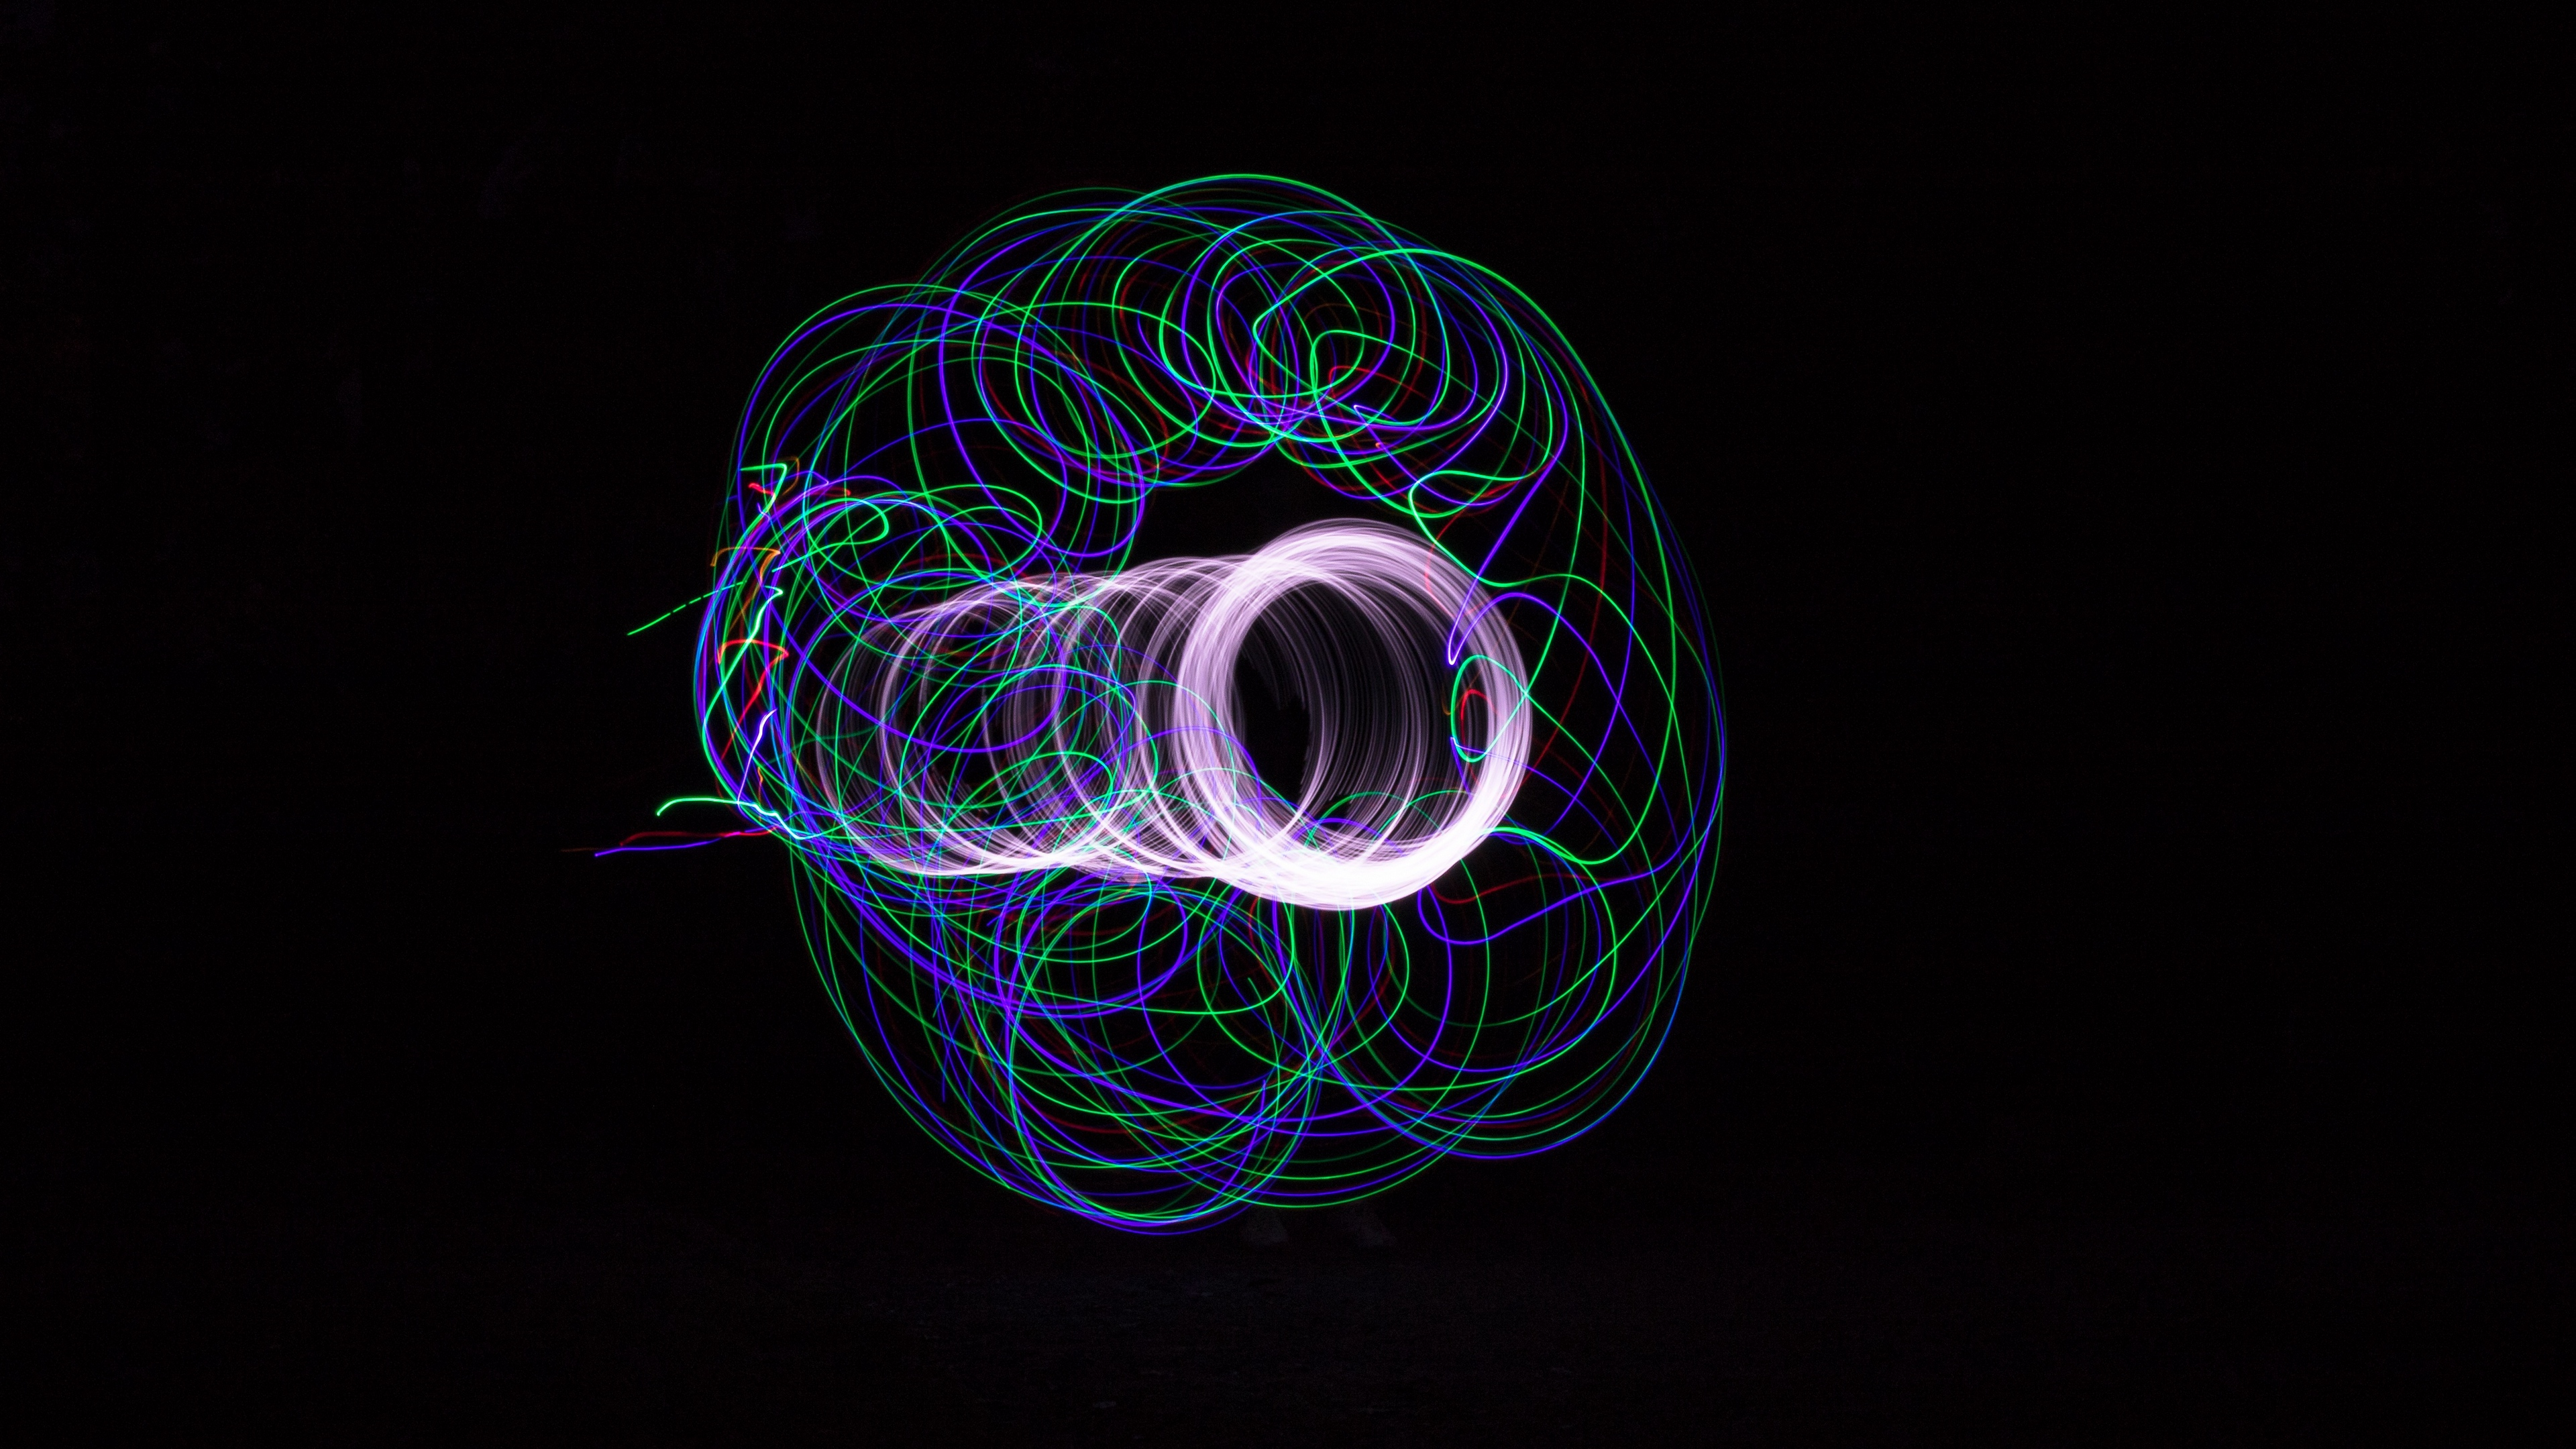 projection light circle lines 4k 1539369495 - projection, light, circle, lines 4k - projection, Light, circle